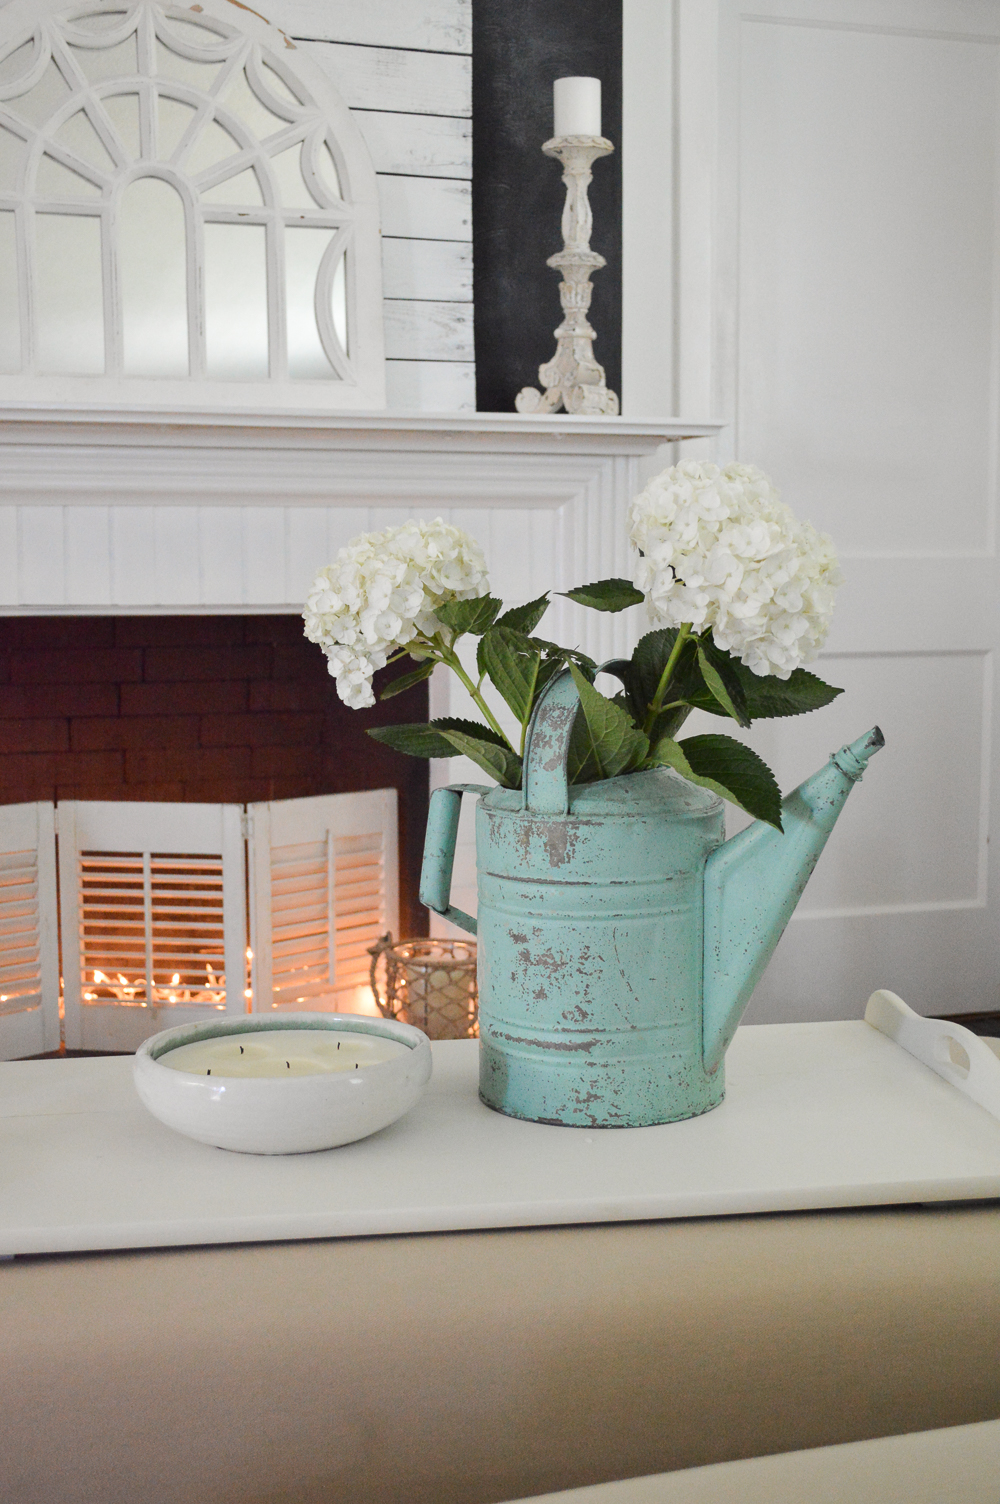 My New Improved Aqua Front Door, Coastal Cottage Home Decorating - www.foxhollowcottage.com - Vintage watering can, Hydrangeas in front of fireplace